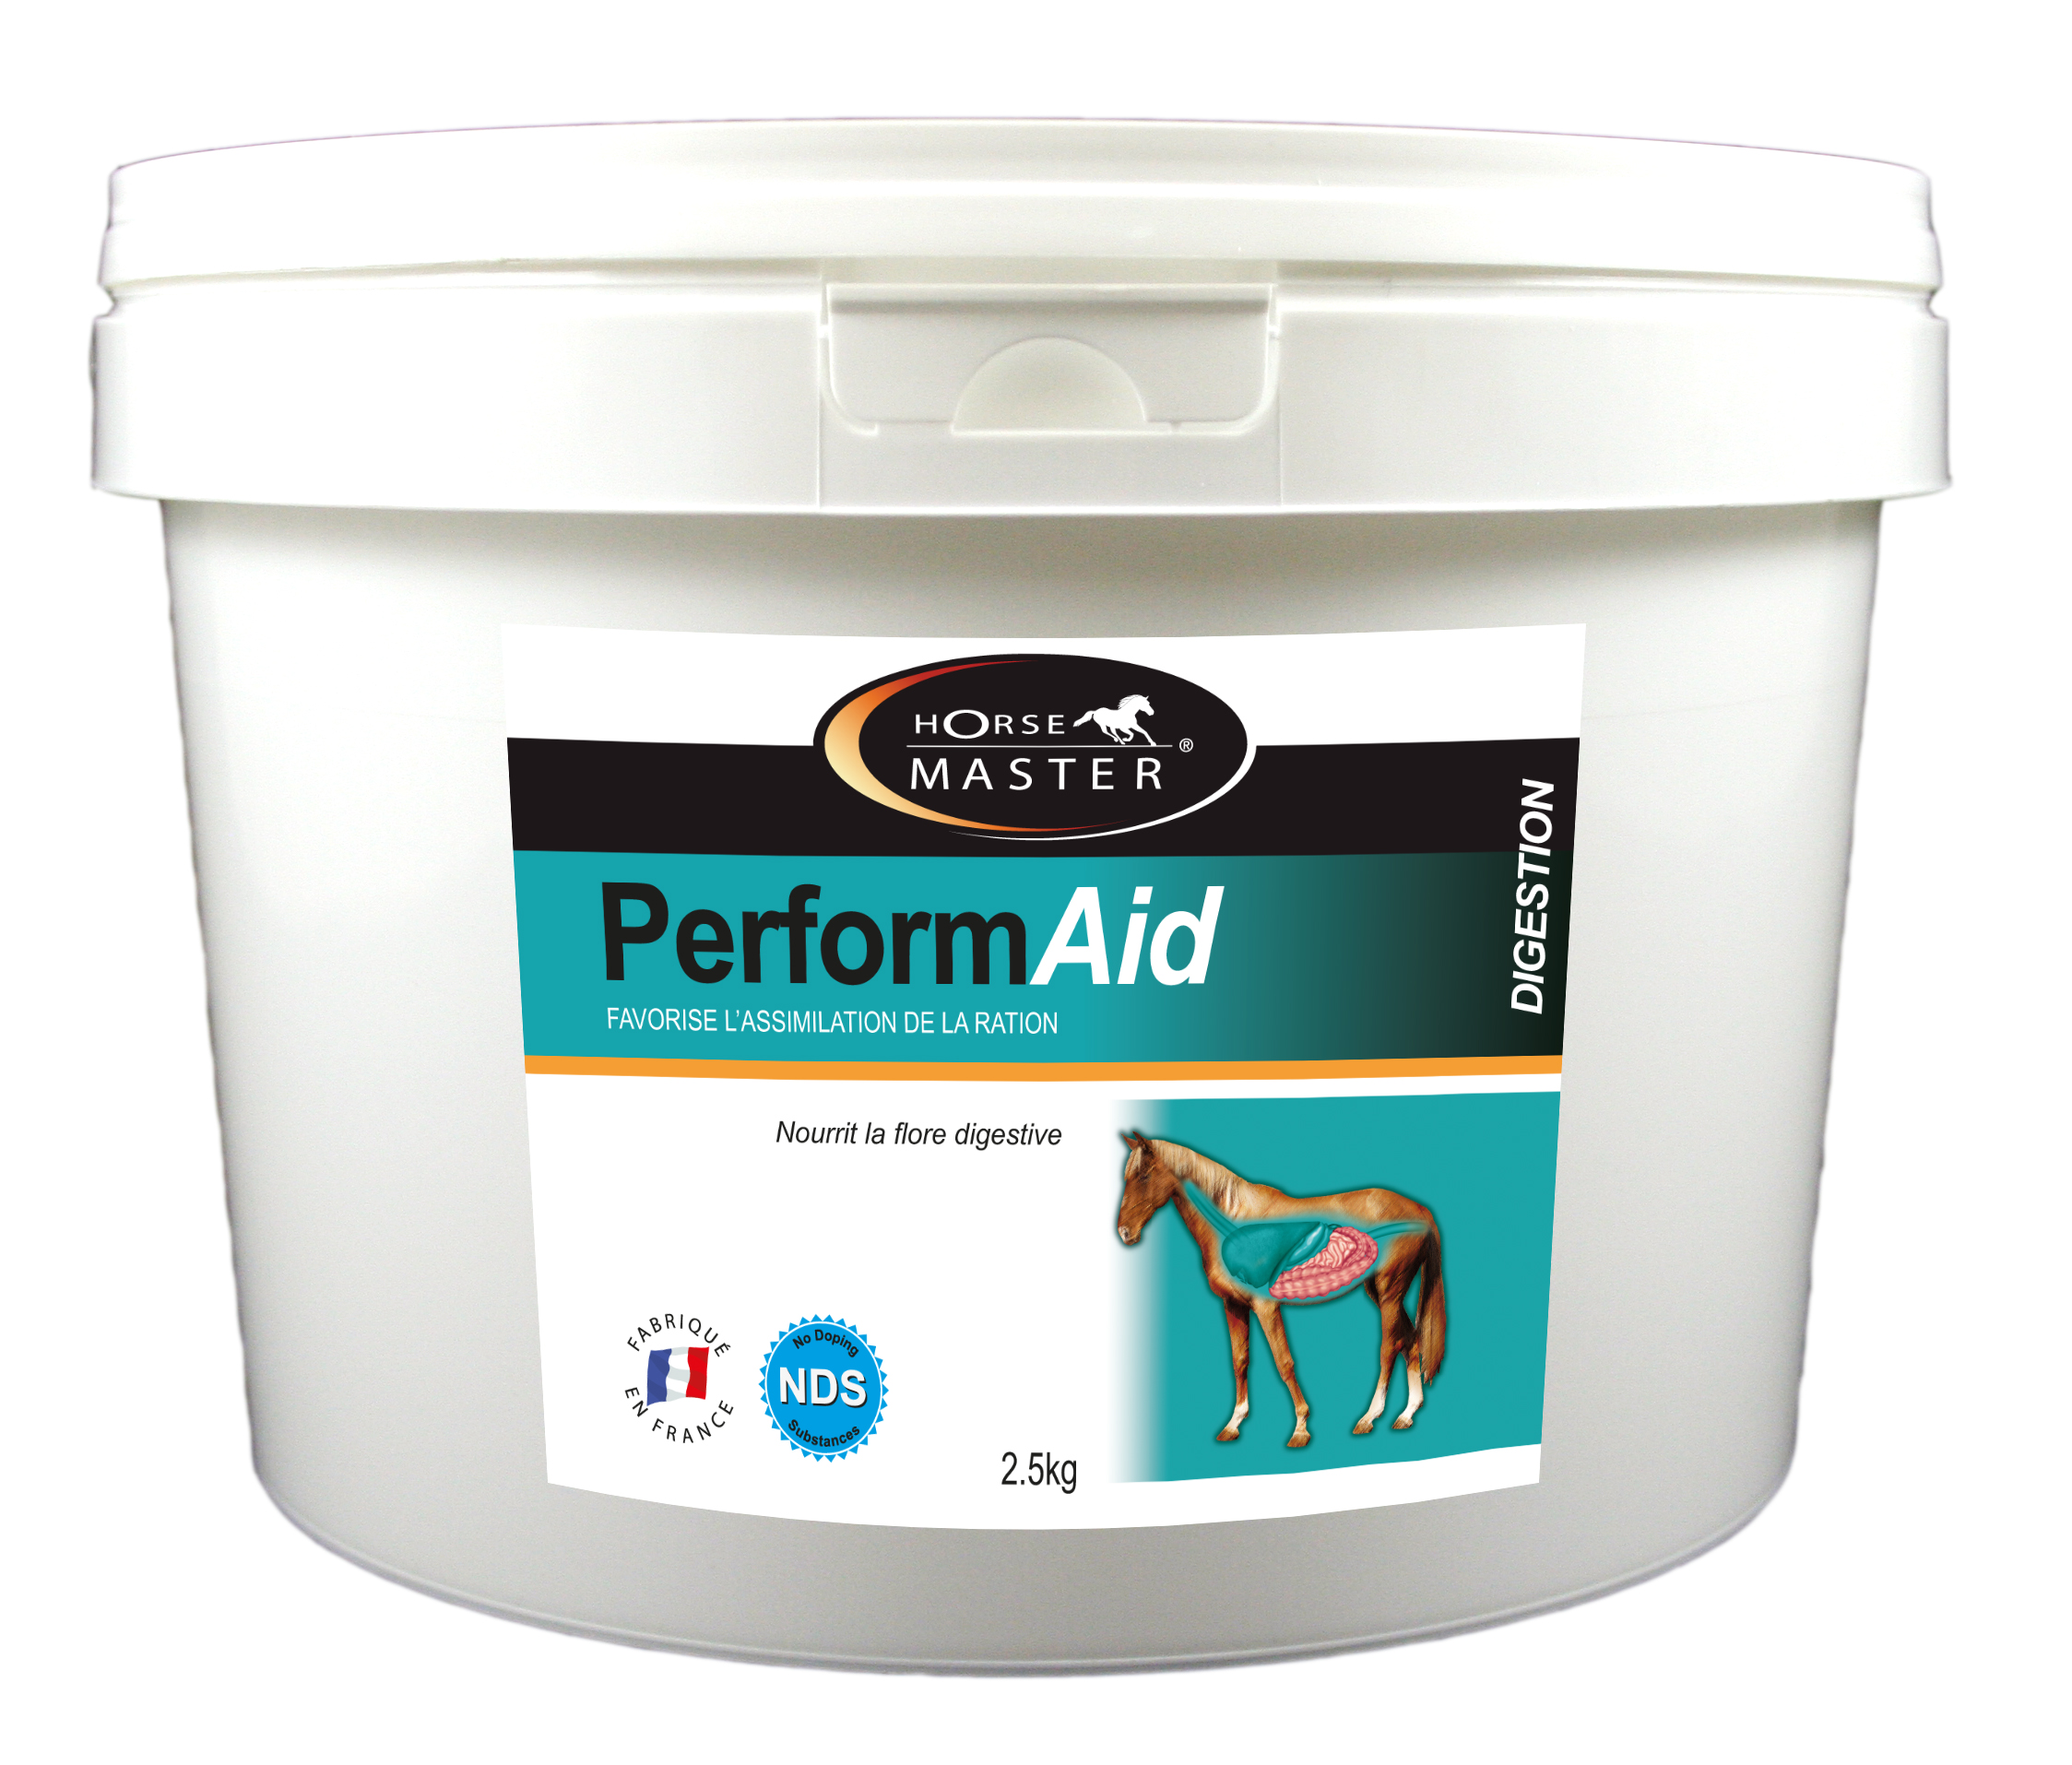 performaid digestive well being and behavior   horses malta